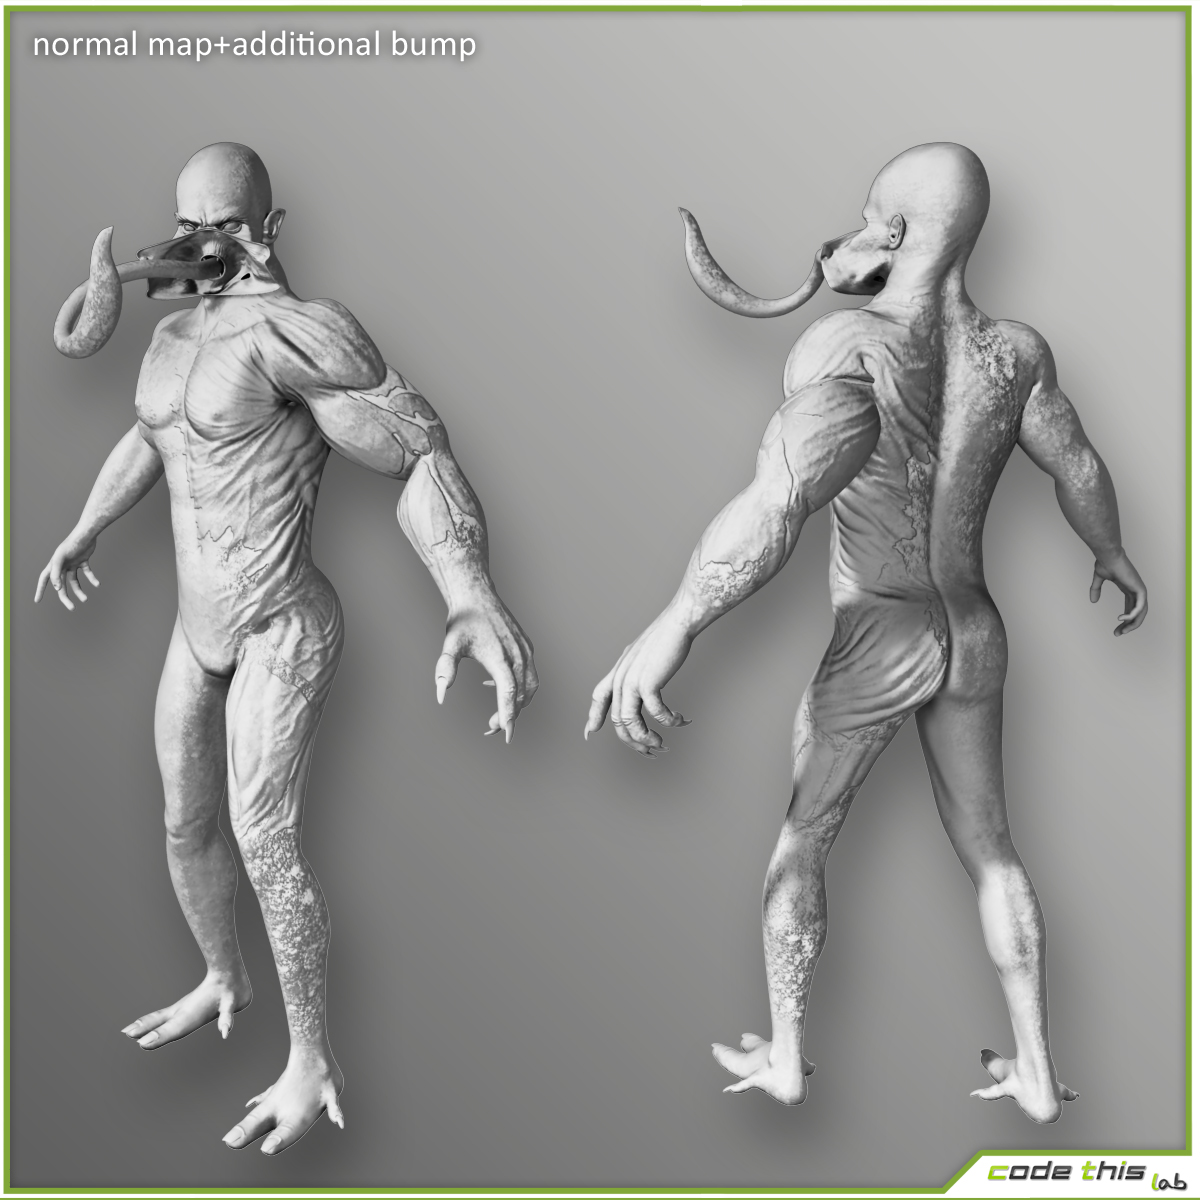 Genetic Monster for videogames 3D model